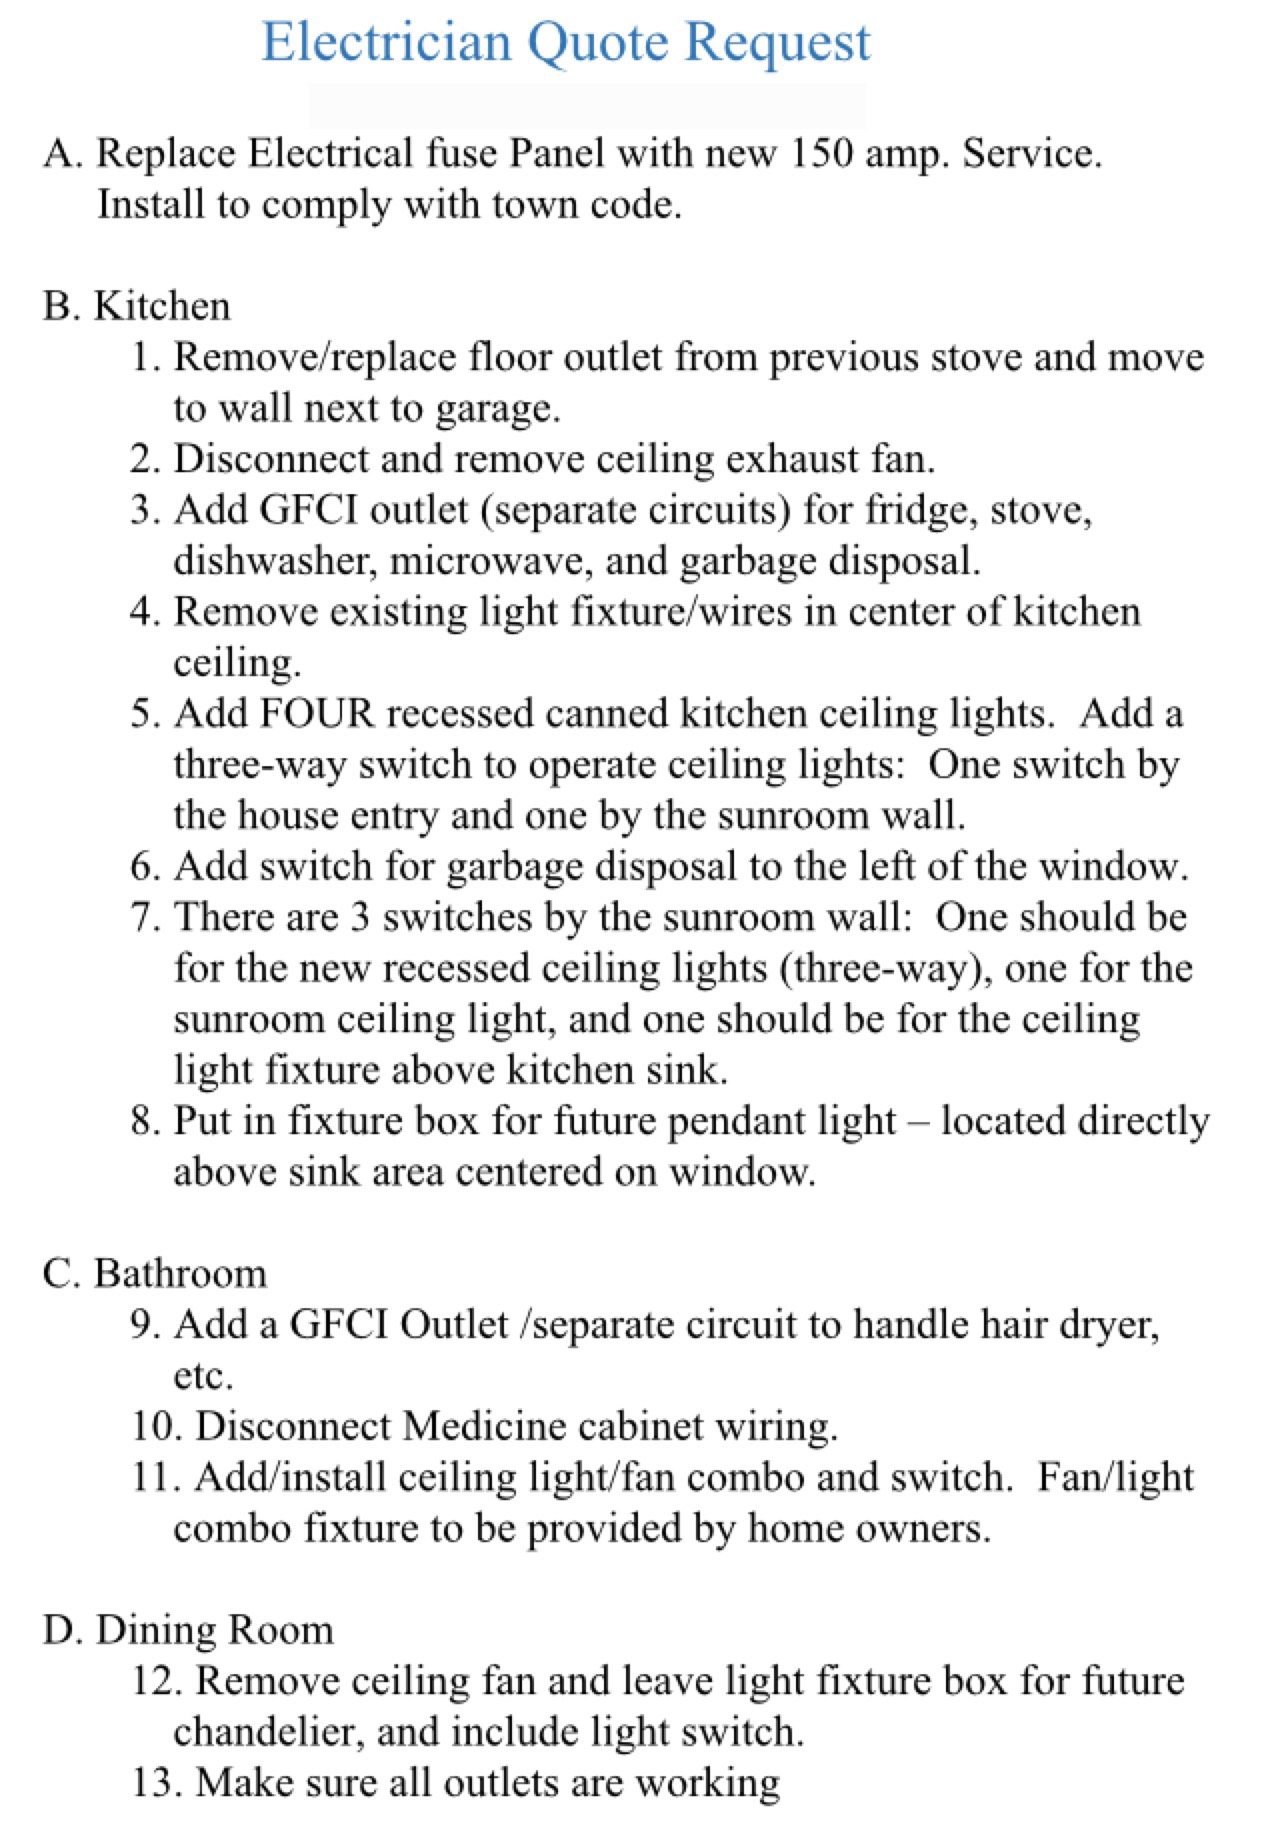 Electrical House Wiring Quotation We Have Light Bunches Of Joy This List Is Actually Shorter Than It Startedmr Found That The Original Seemed To Scare Away Some Electricians